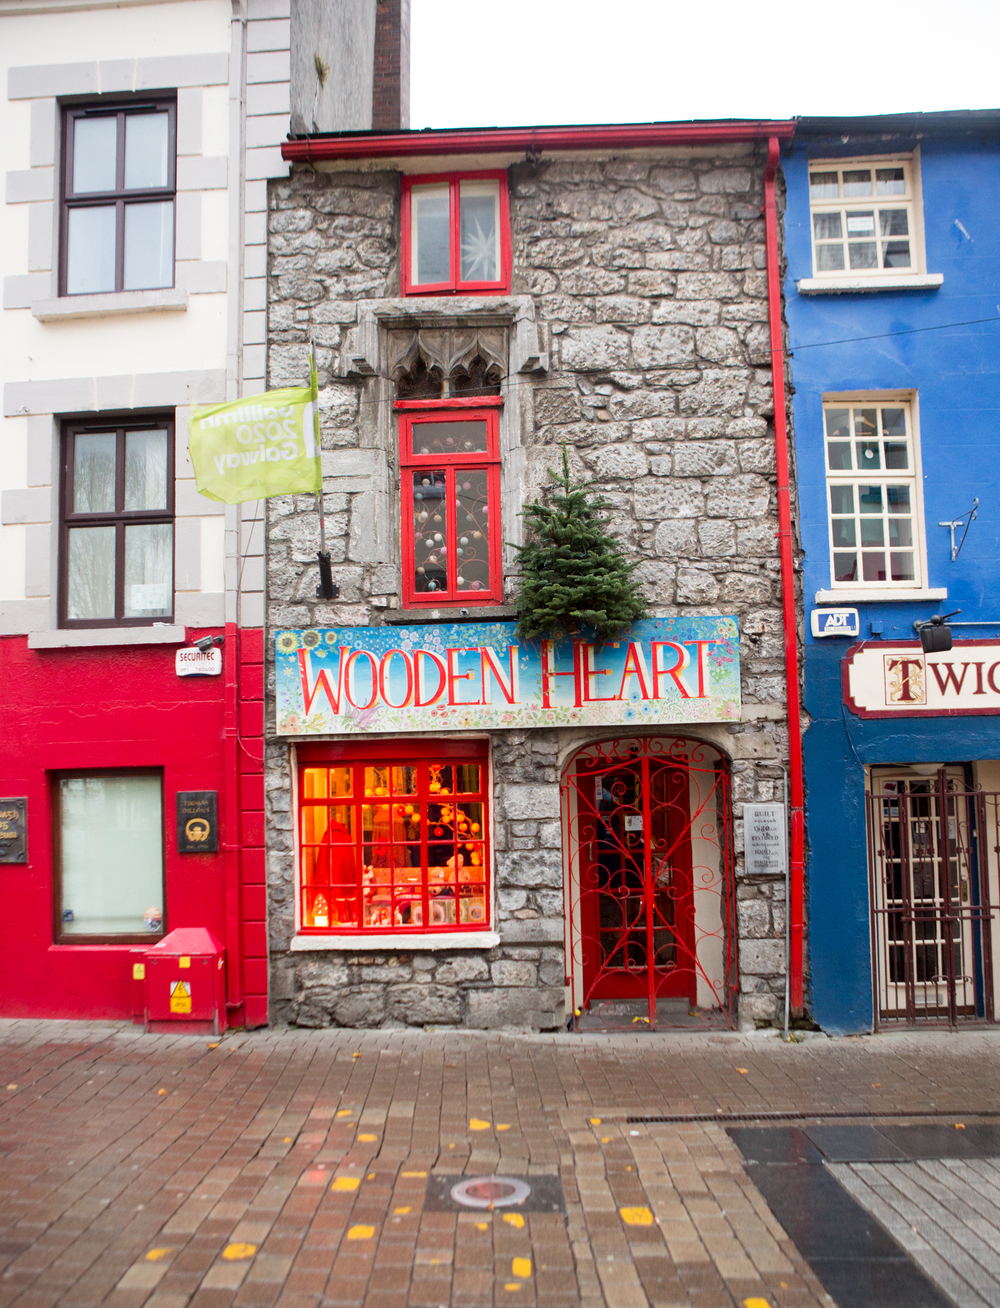 Dan's coffeeshop is across the street from the sweetest toy shop called Wooden Heart, which is run by his parents! The family has been in Galway for many years, and both shops are beloved.